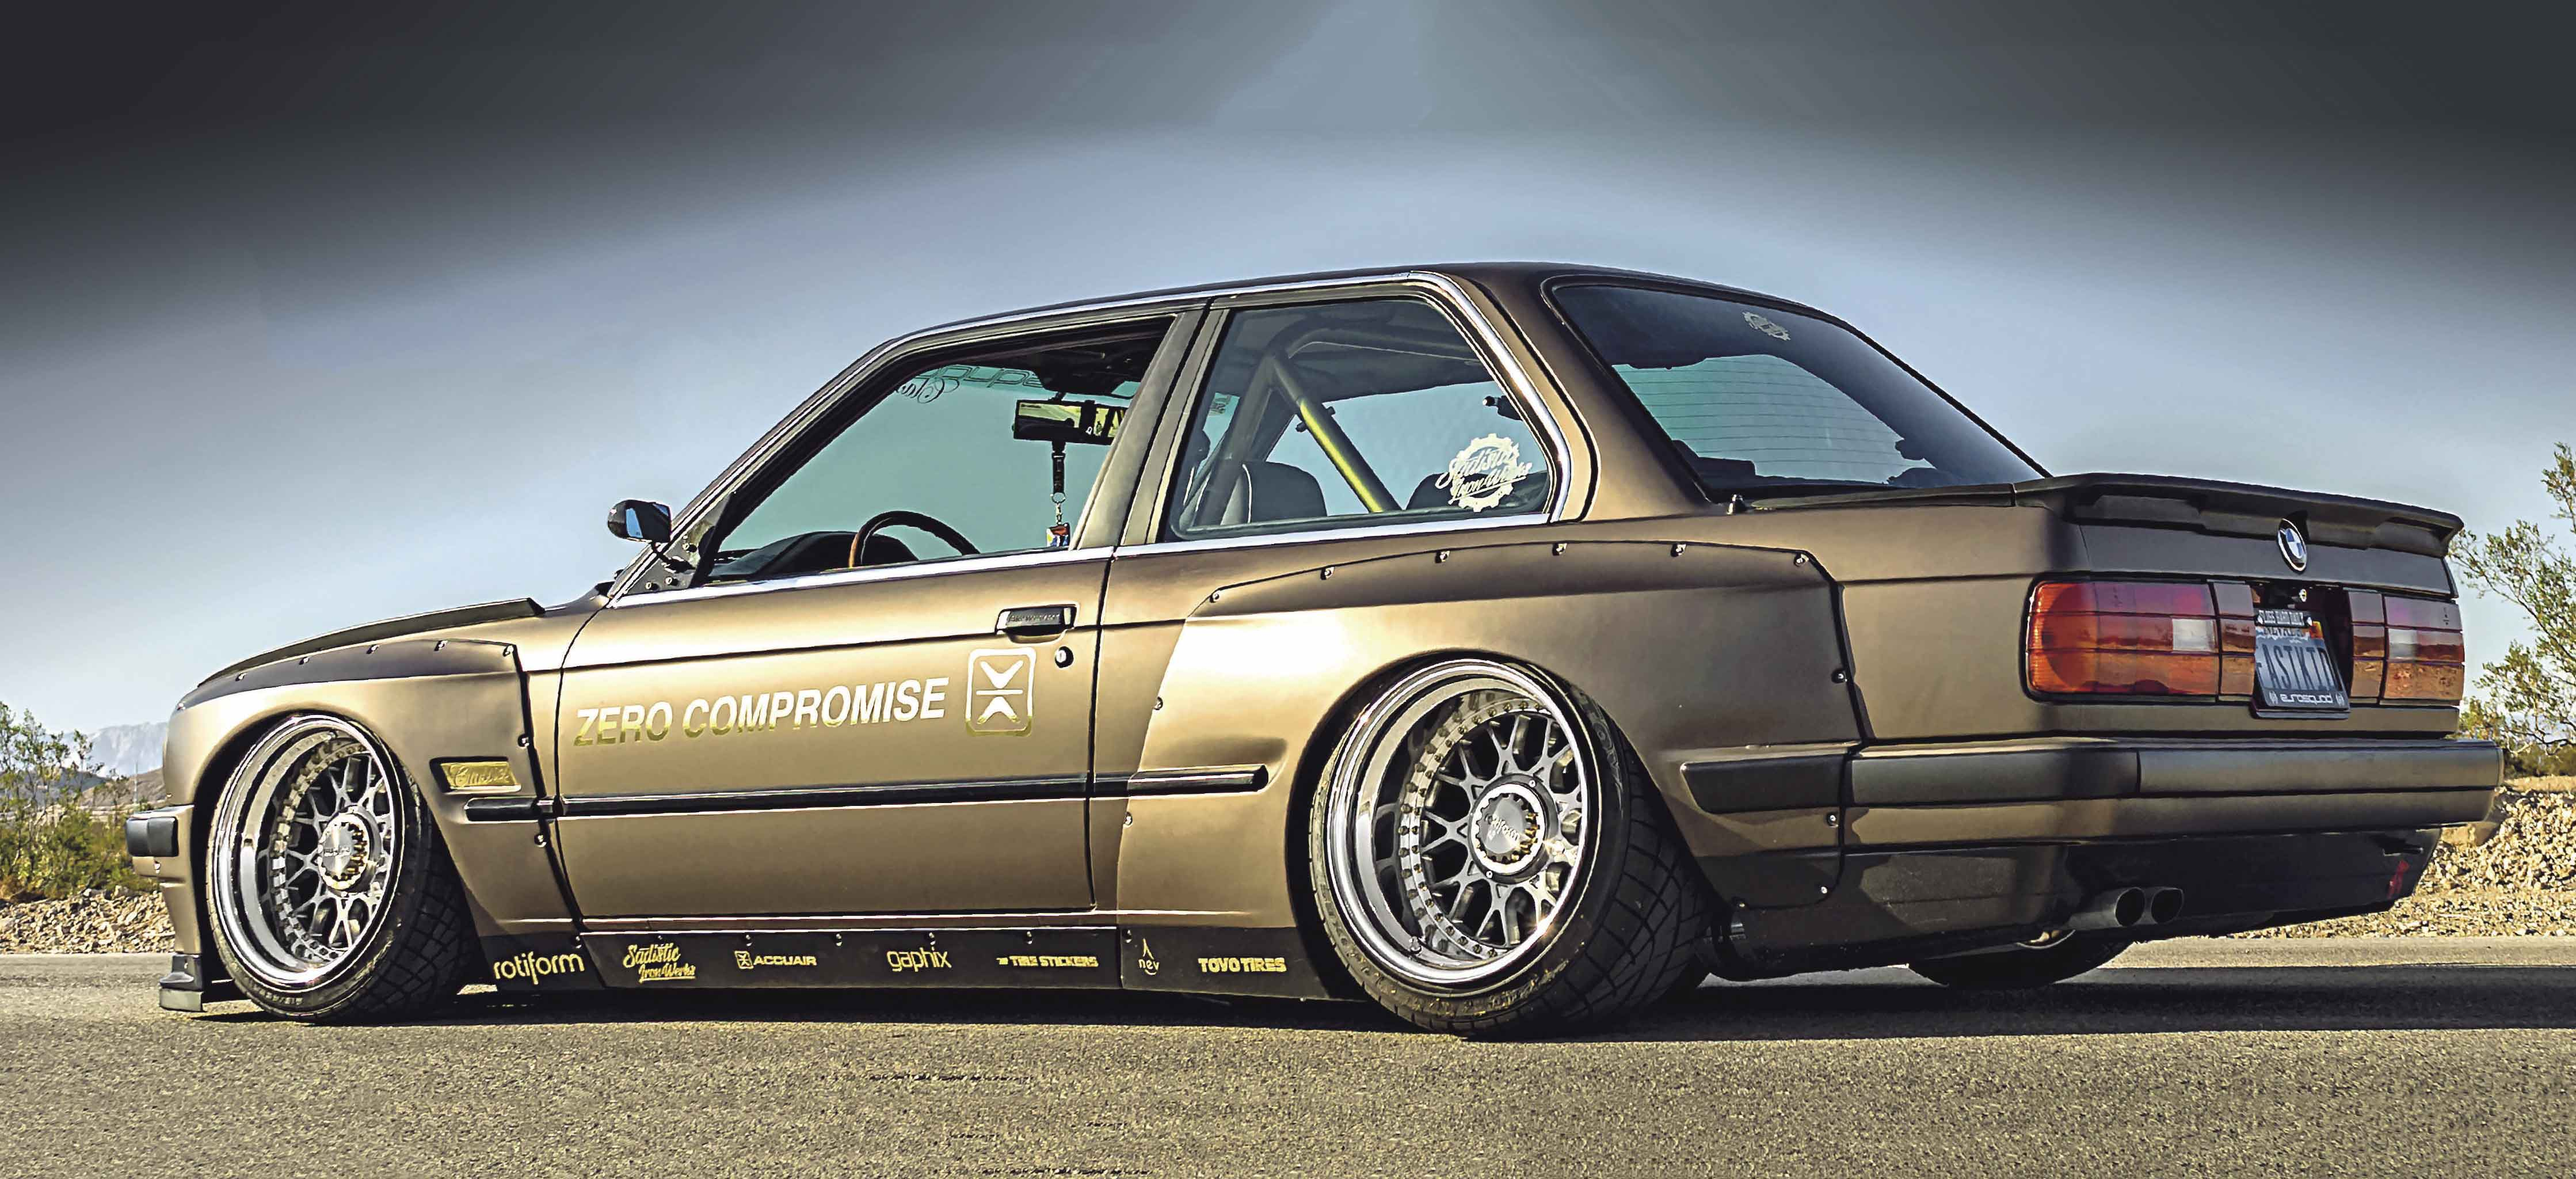 Wide-body BMW 325i Coupe E30 M20 2 5-litre engined with